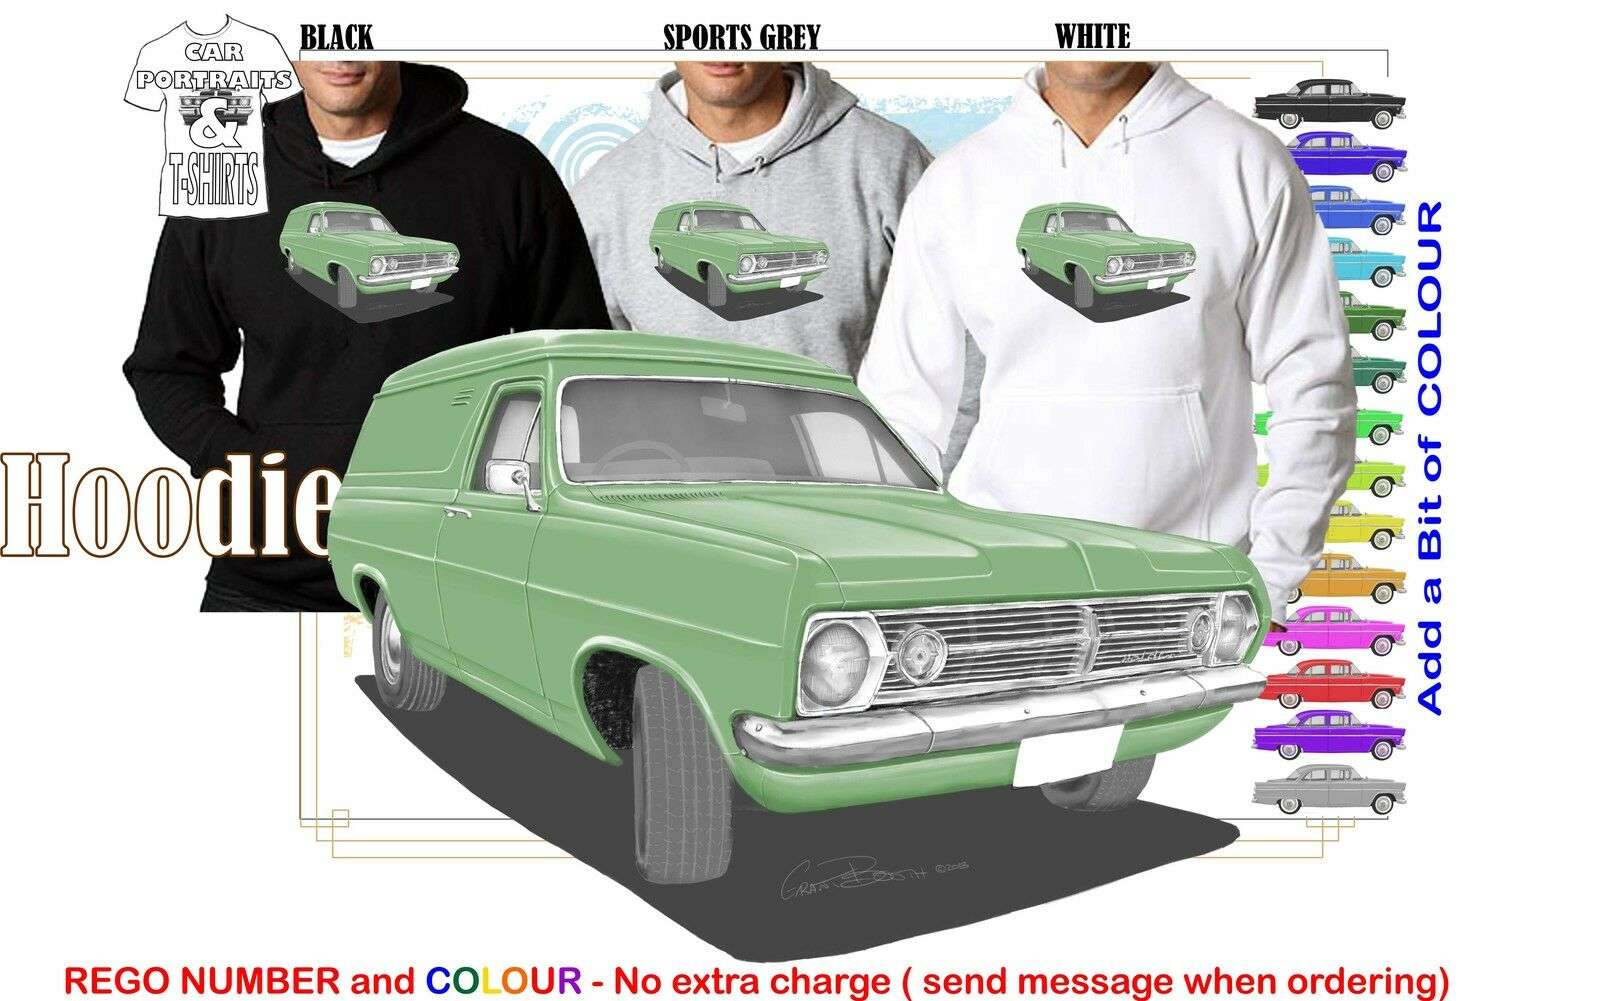 66-68 HR HOLDEN VAN HOODIE ILLUSTRATED CLASSIC RETRO MUSCLE SPORTS CAR